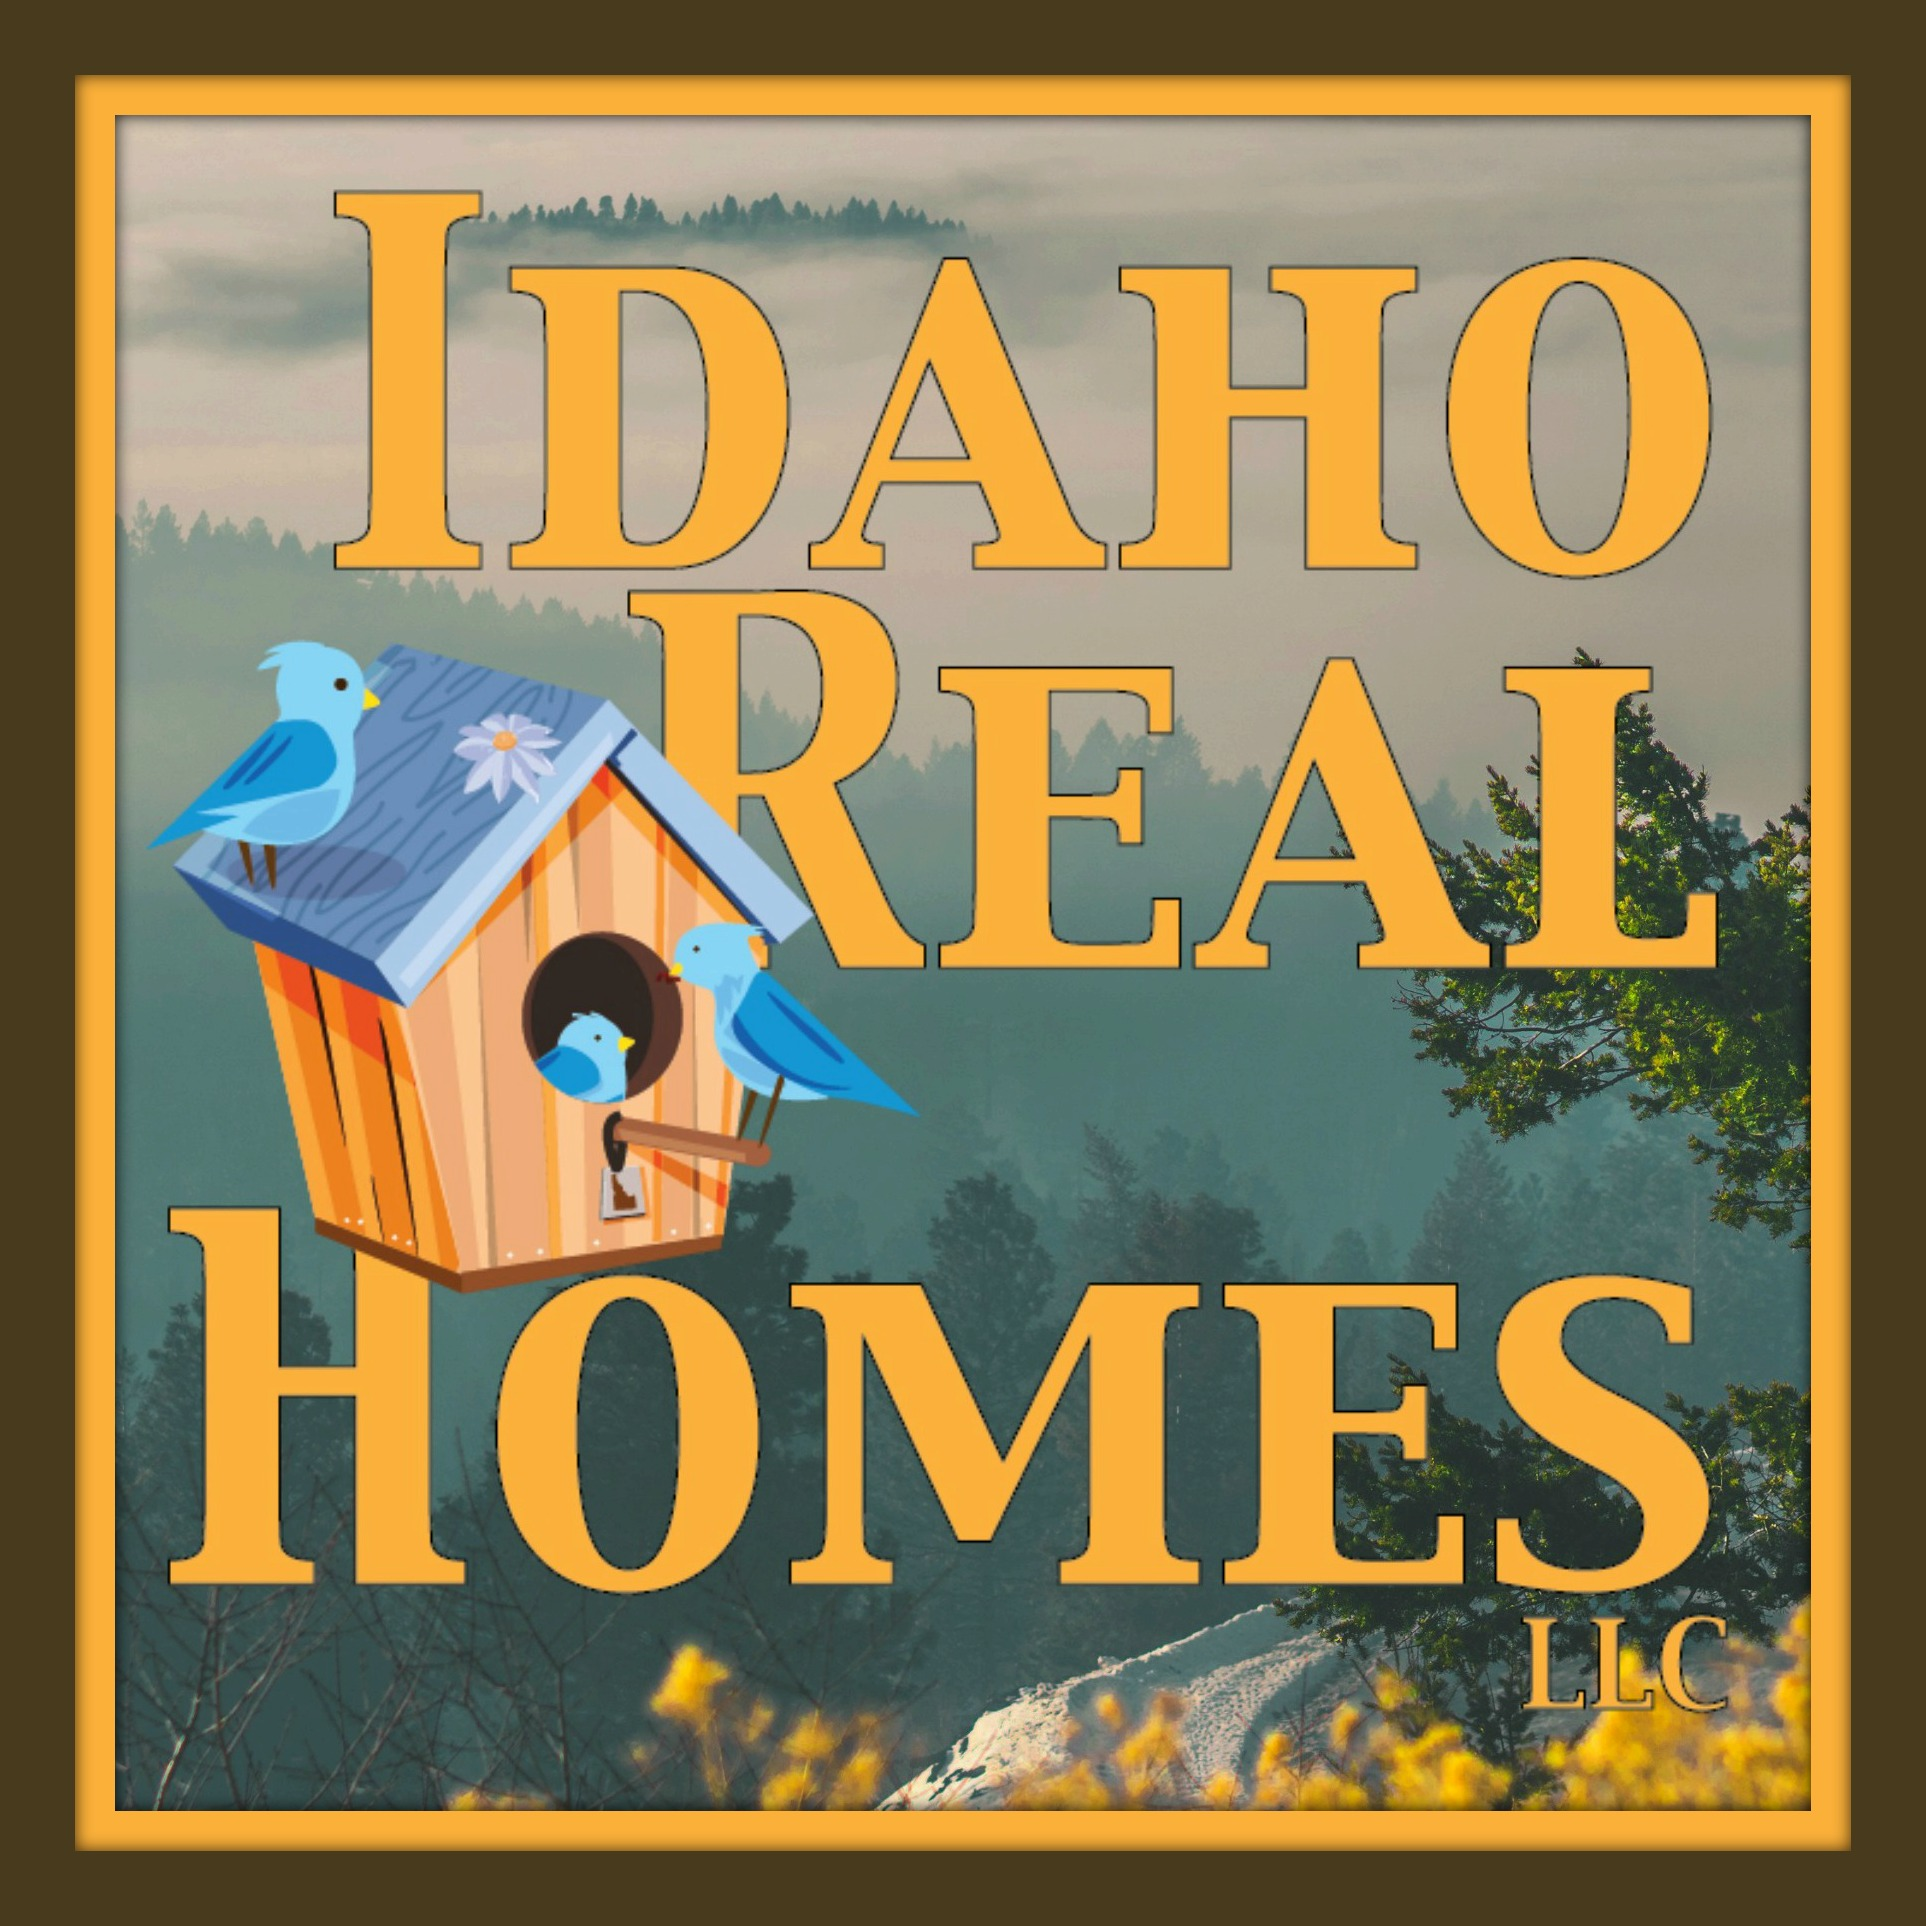 Idaho Real Homes LLC 157 W Hayden Ave Ste 200 Hayden Idaho 83835. 208-719-9010